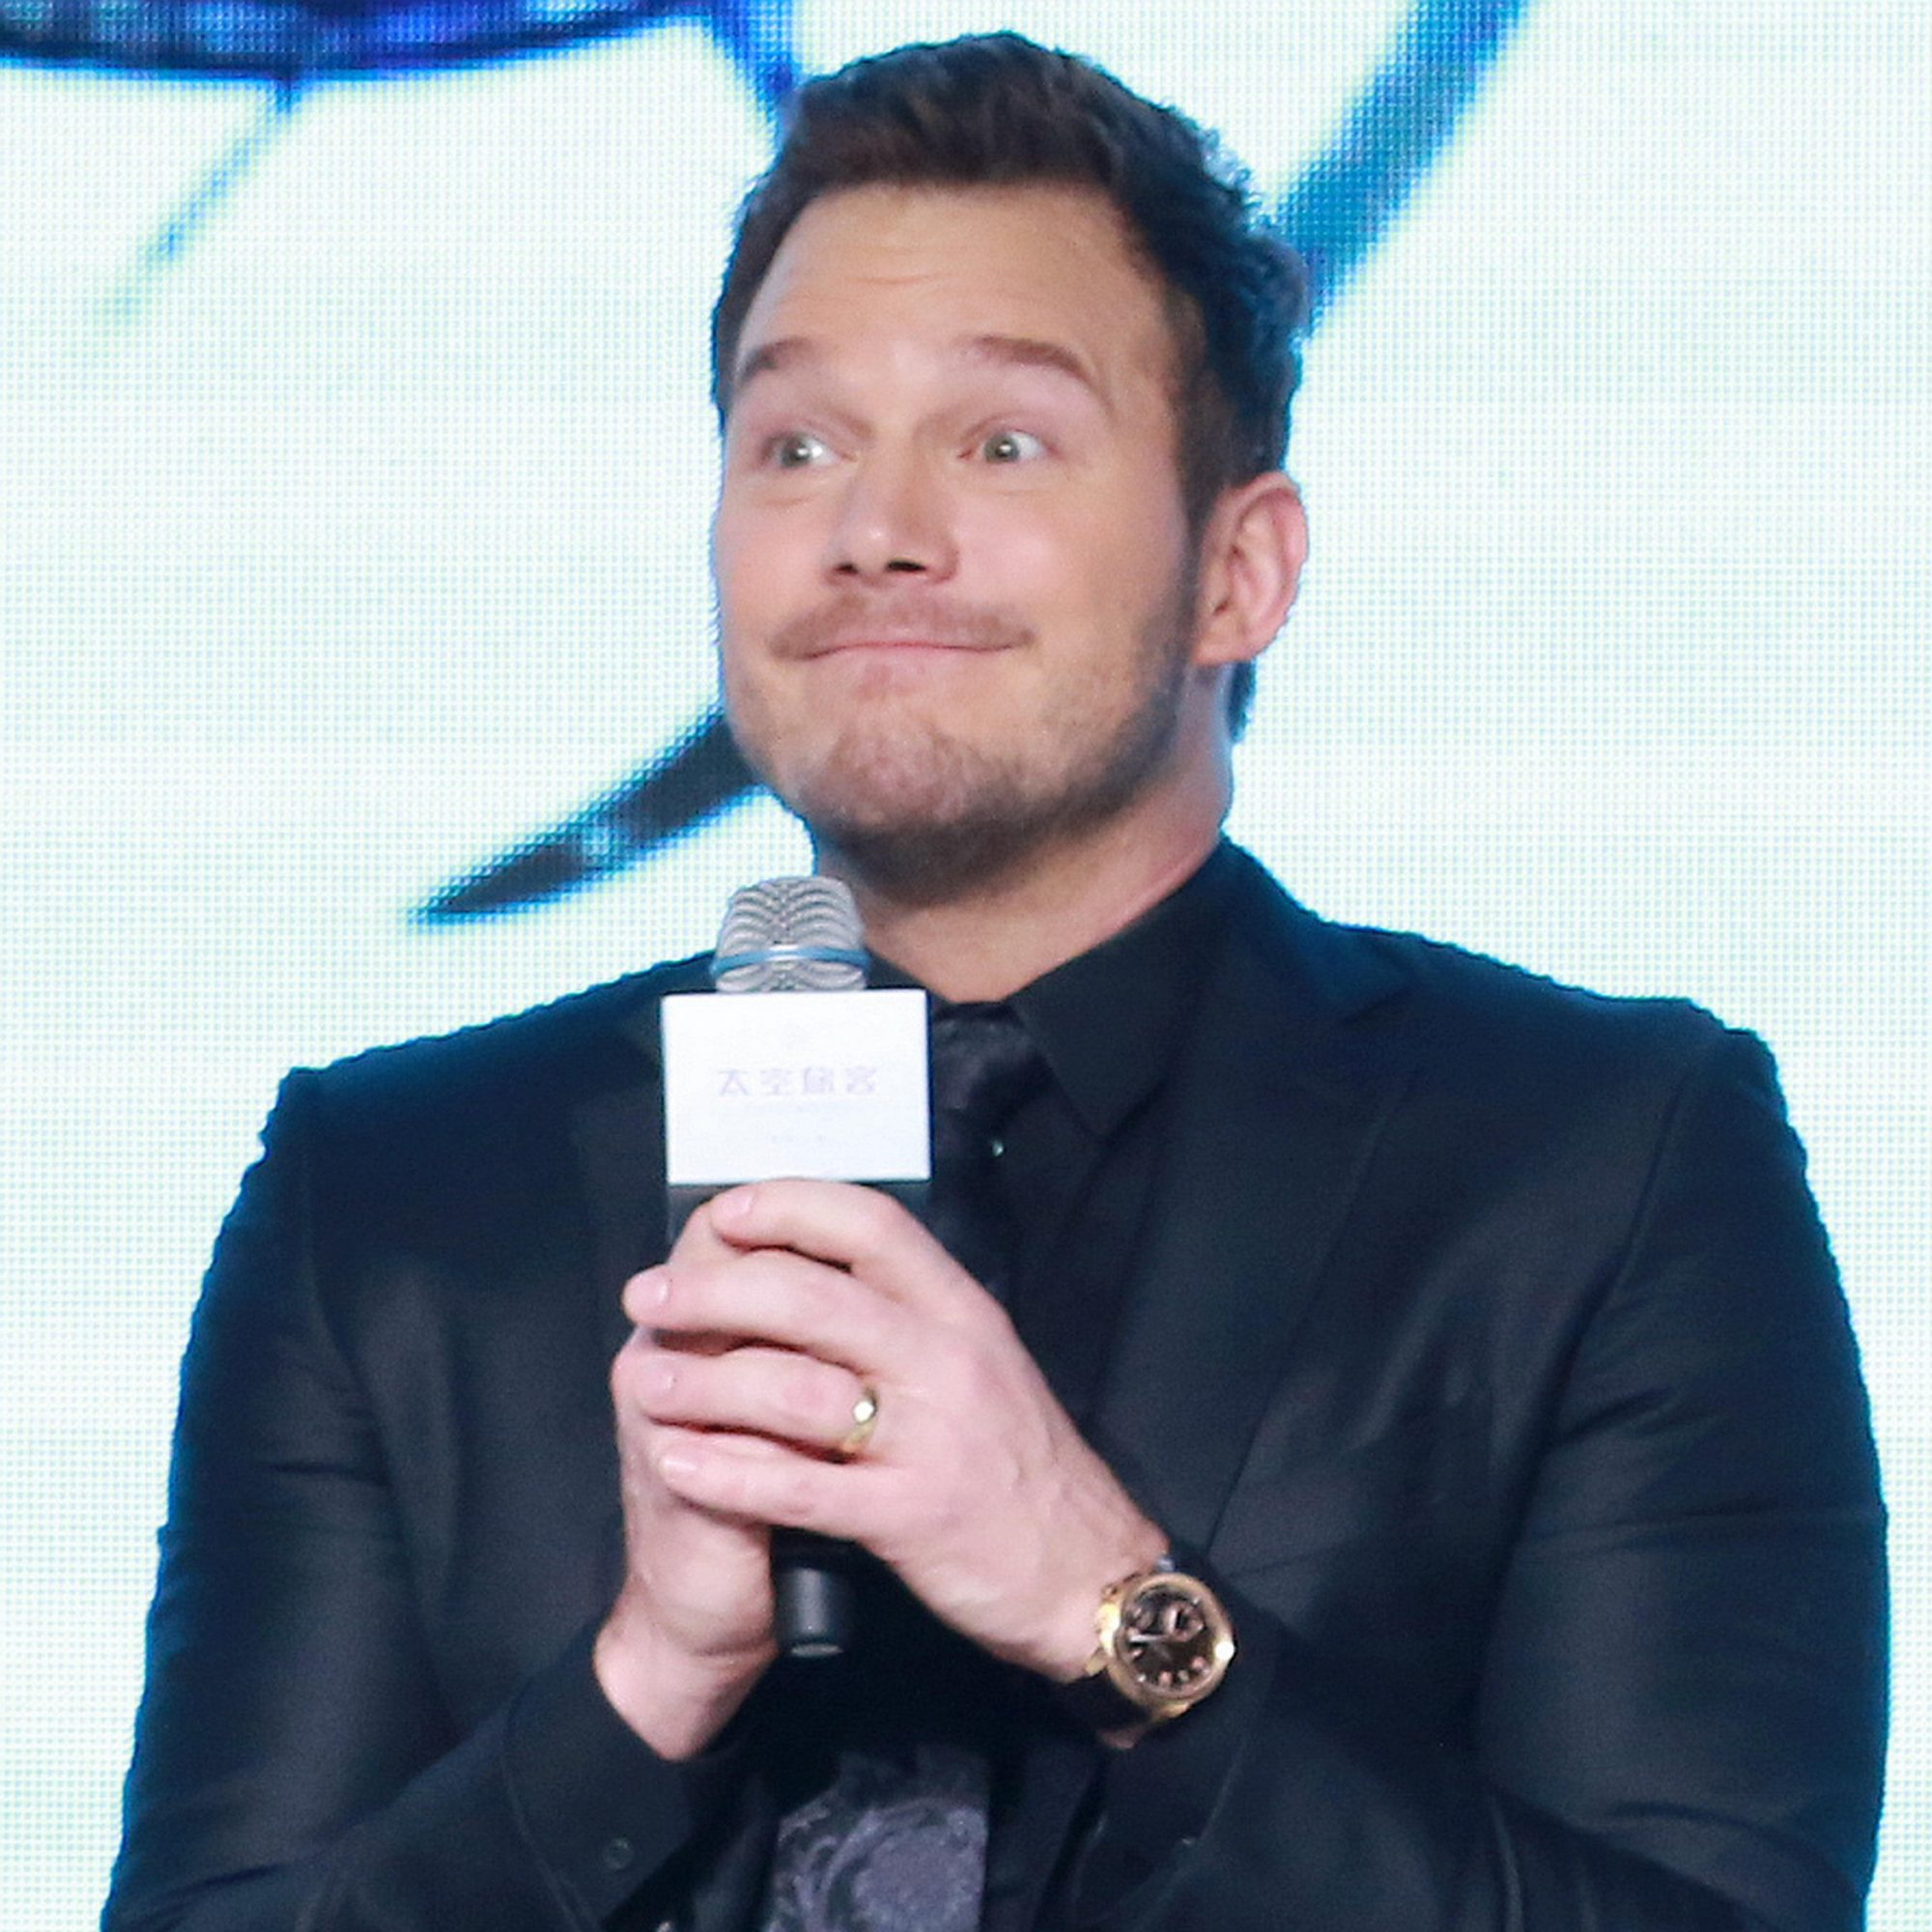 chris-pratt-fish-fillet-fwx